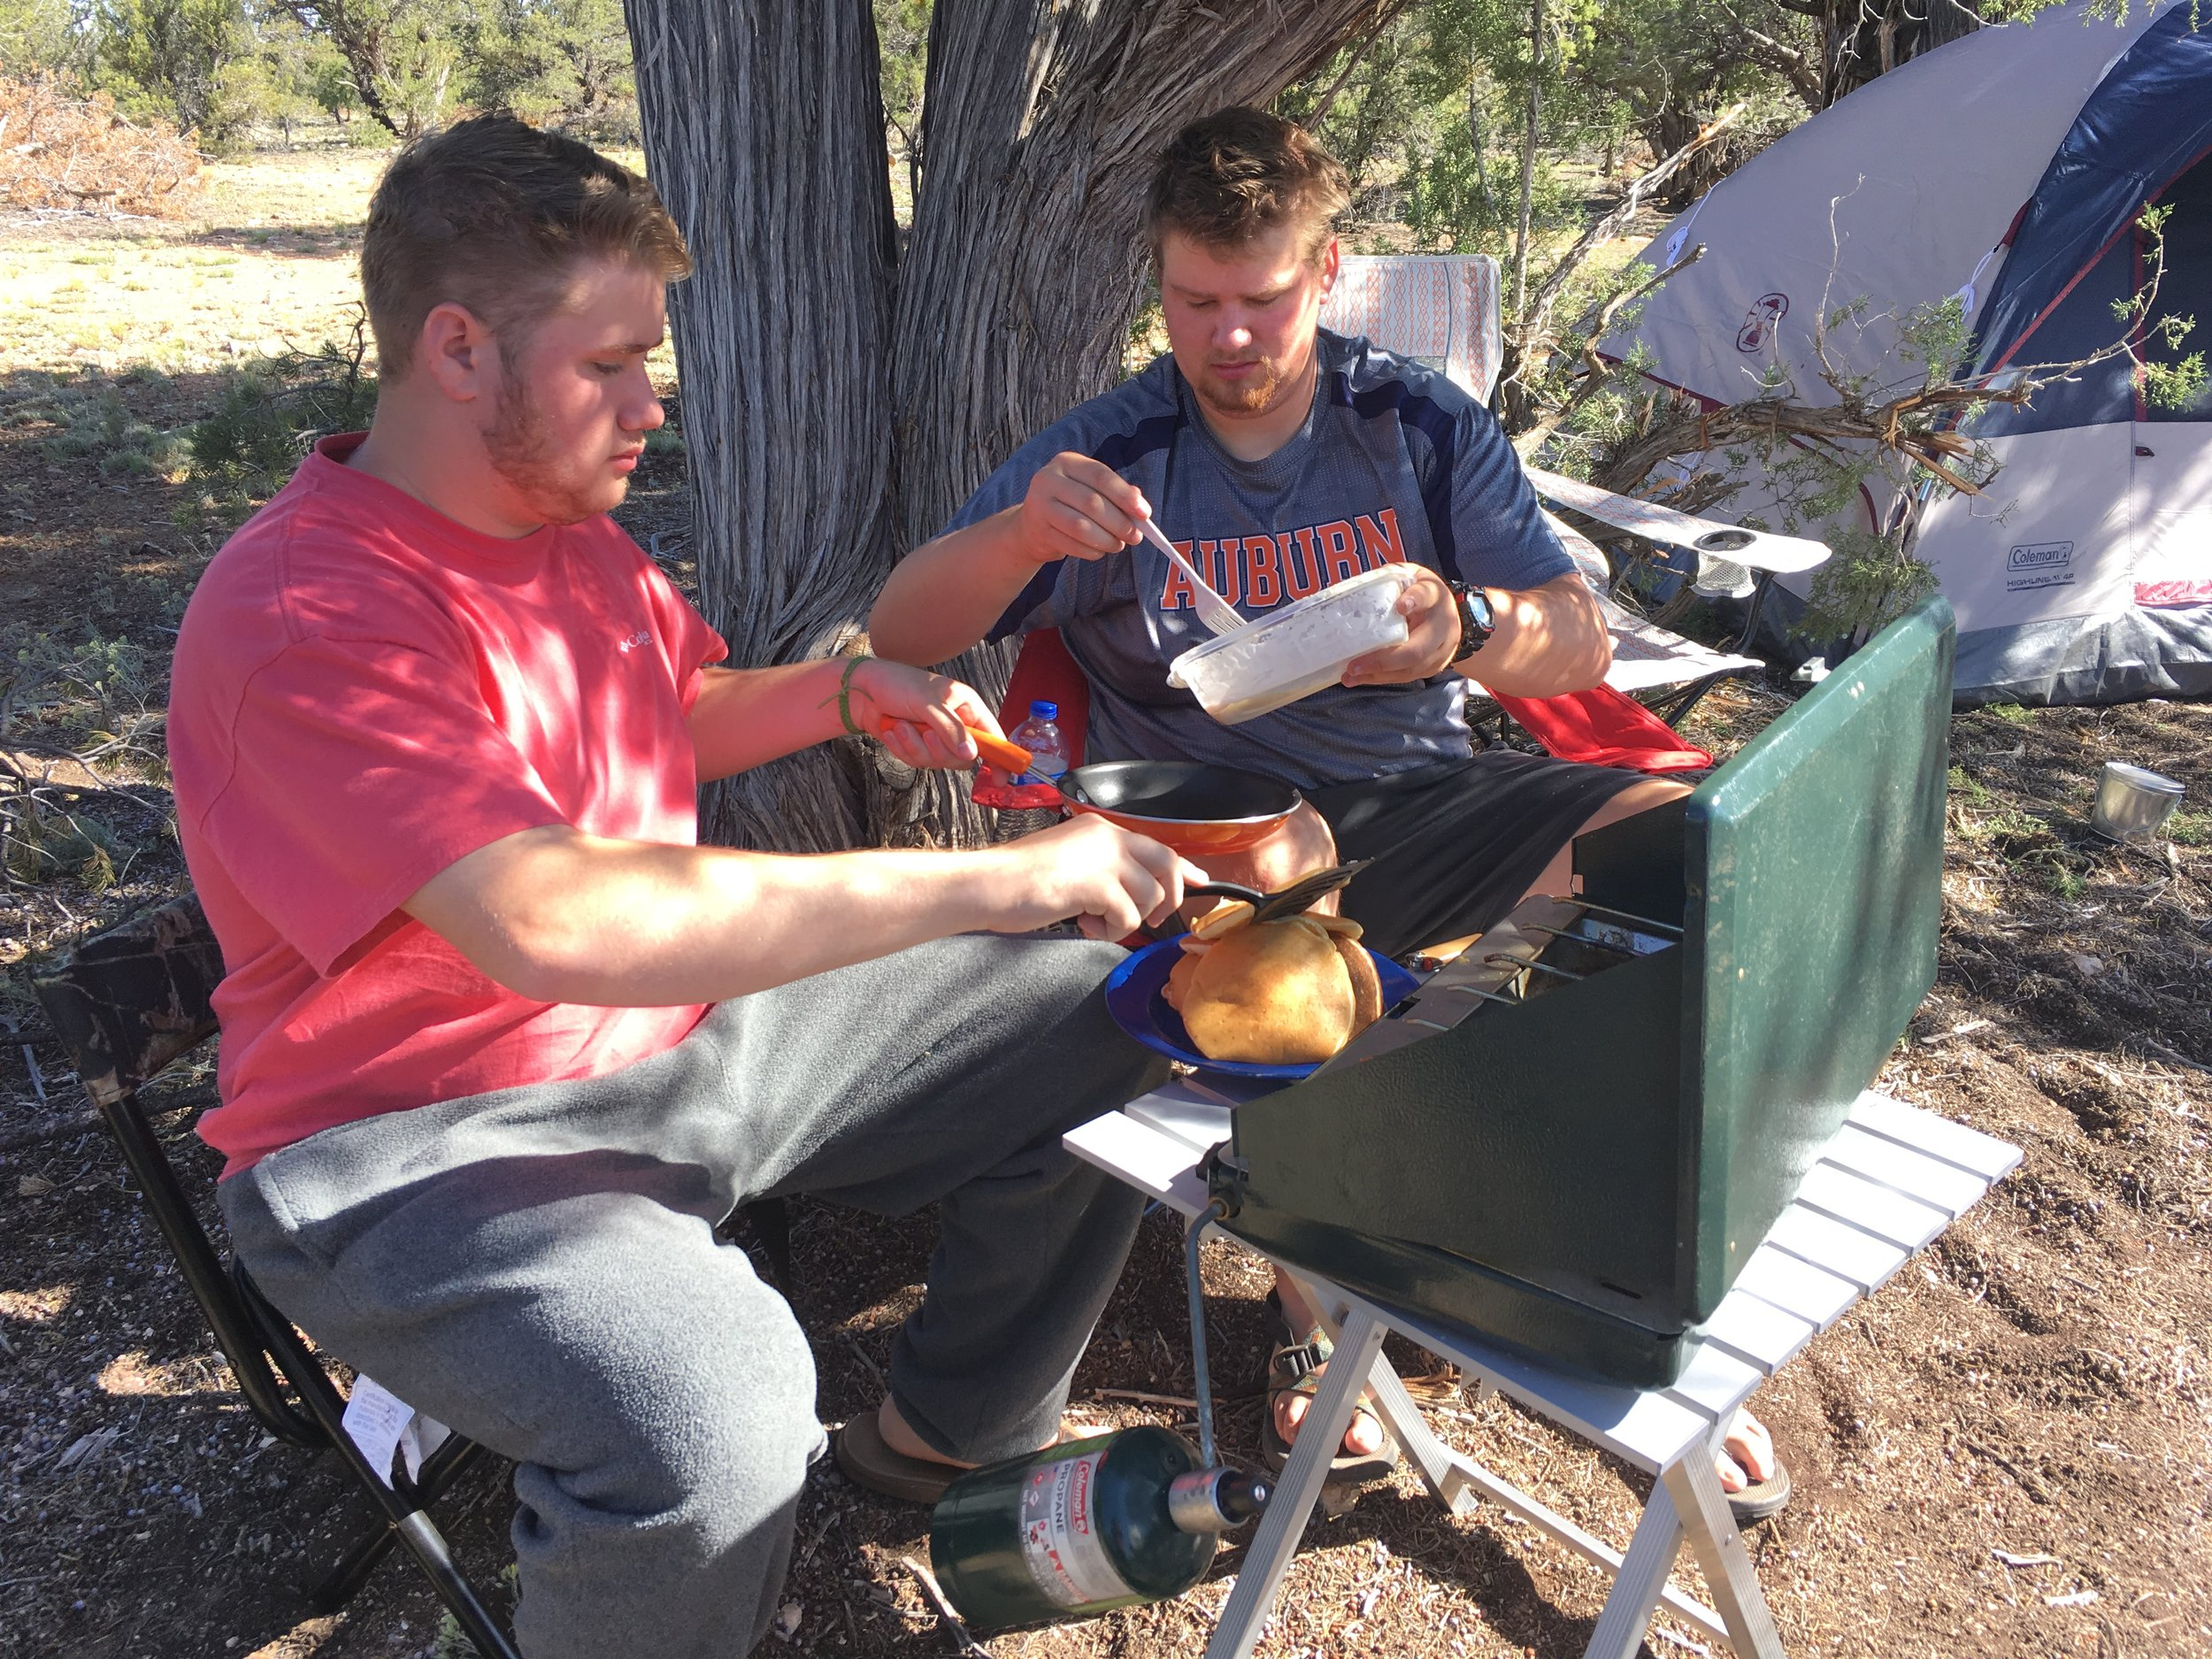 Breakfast at the Grand Canyon campsite